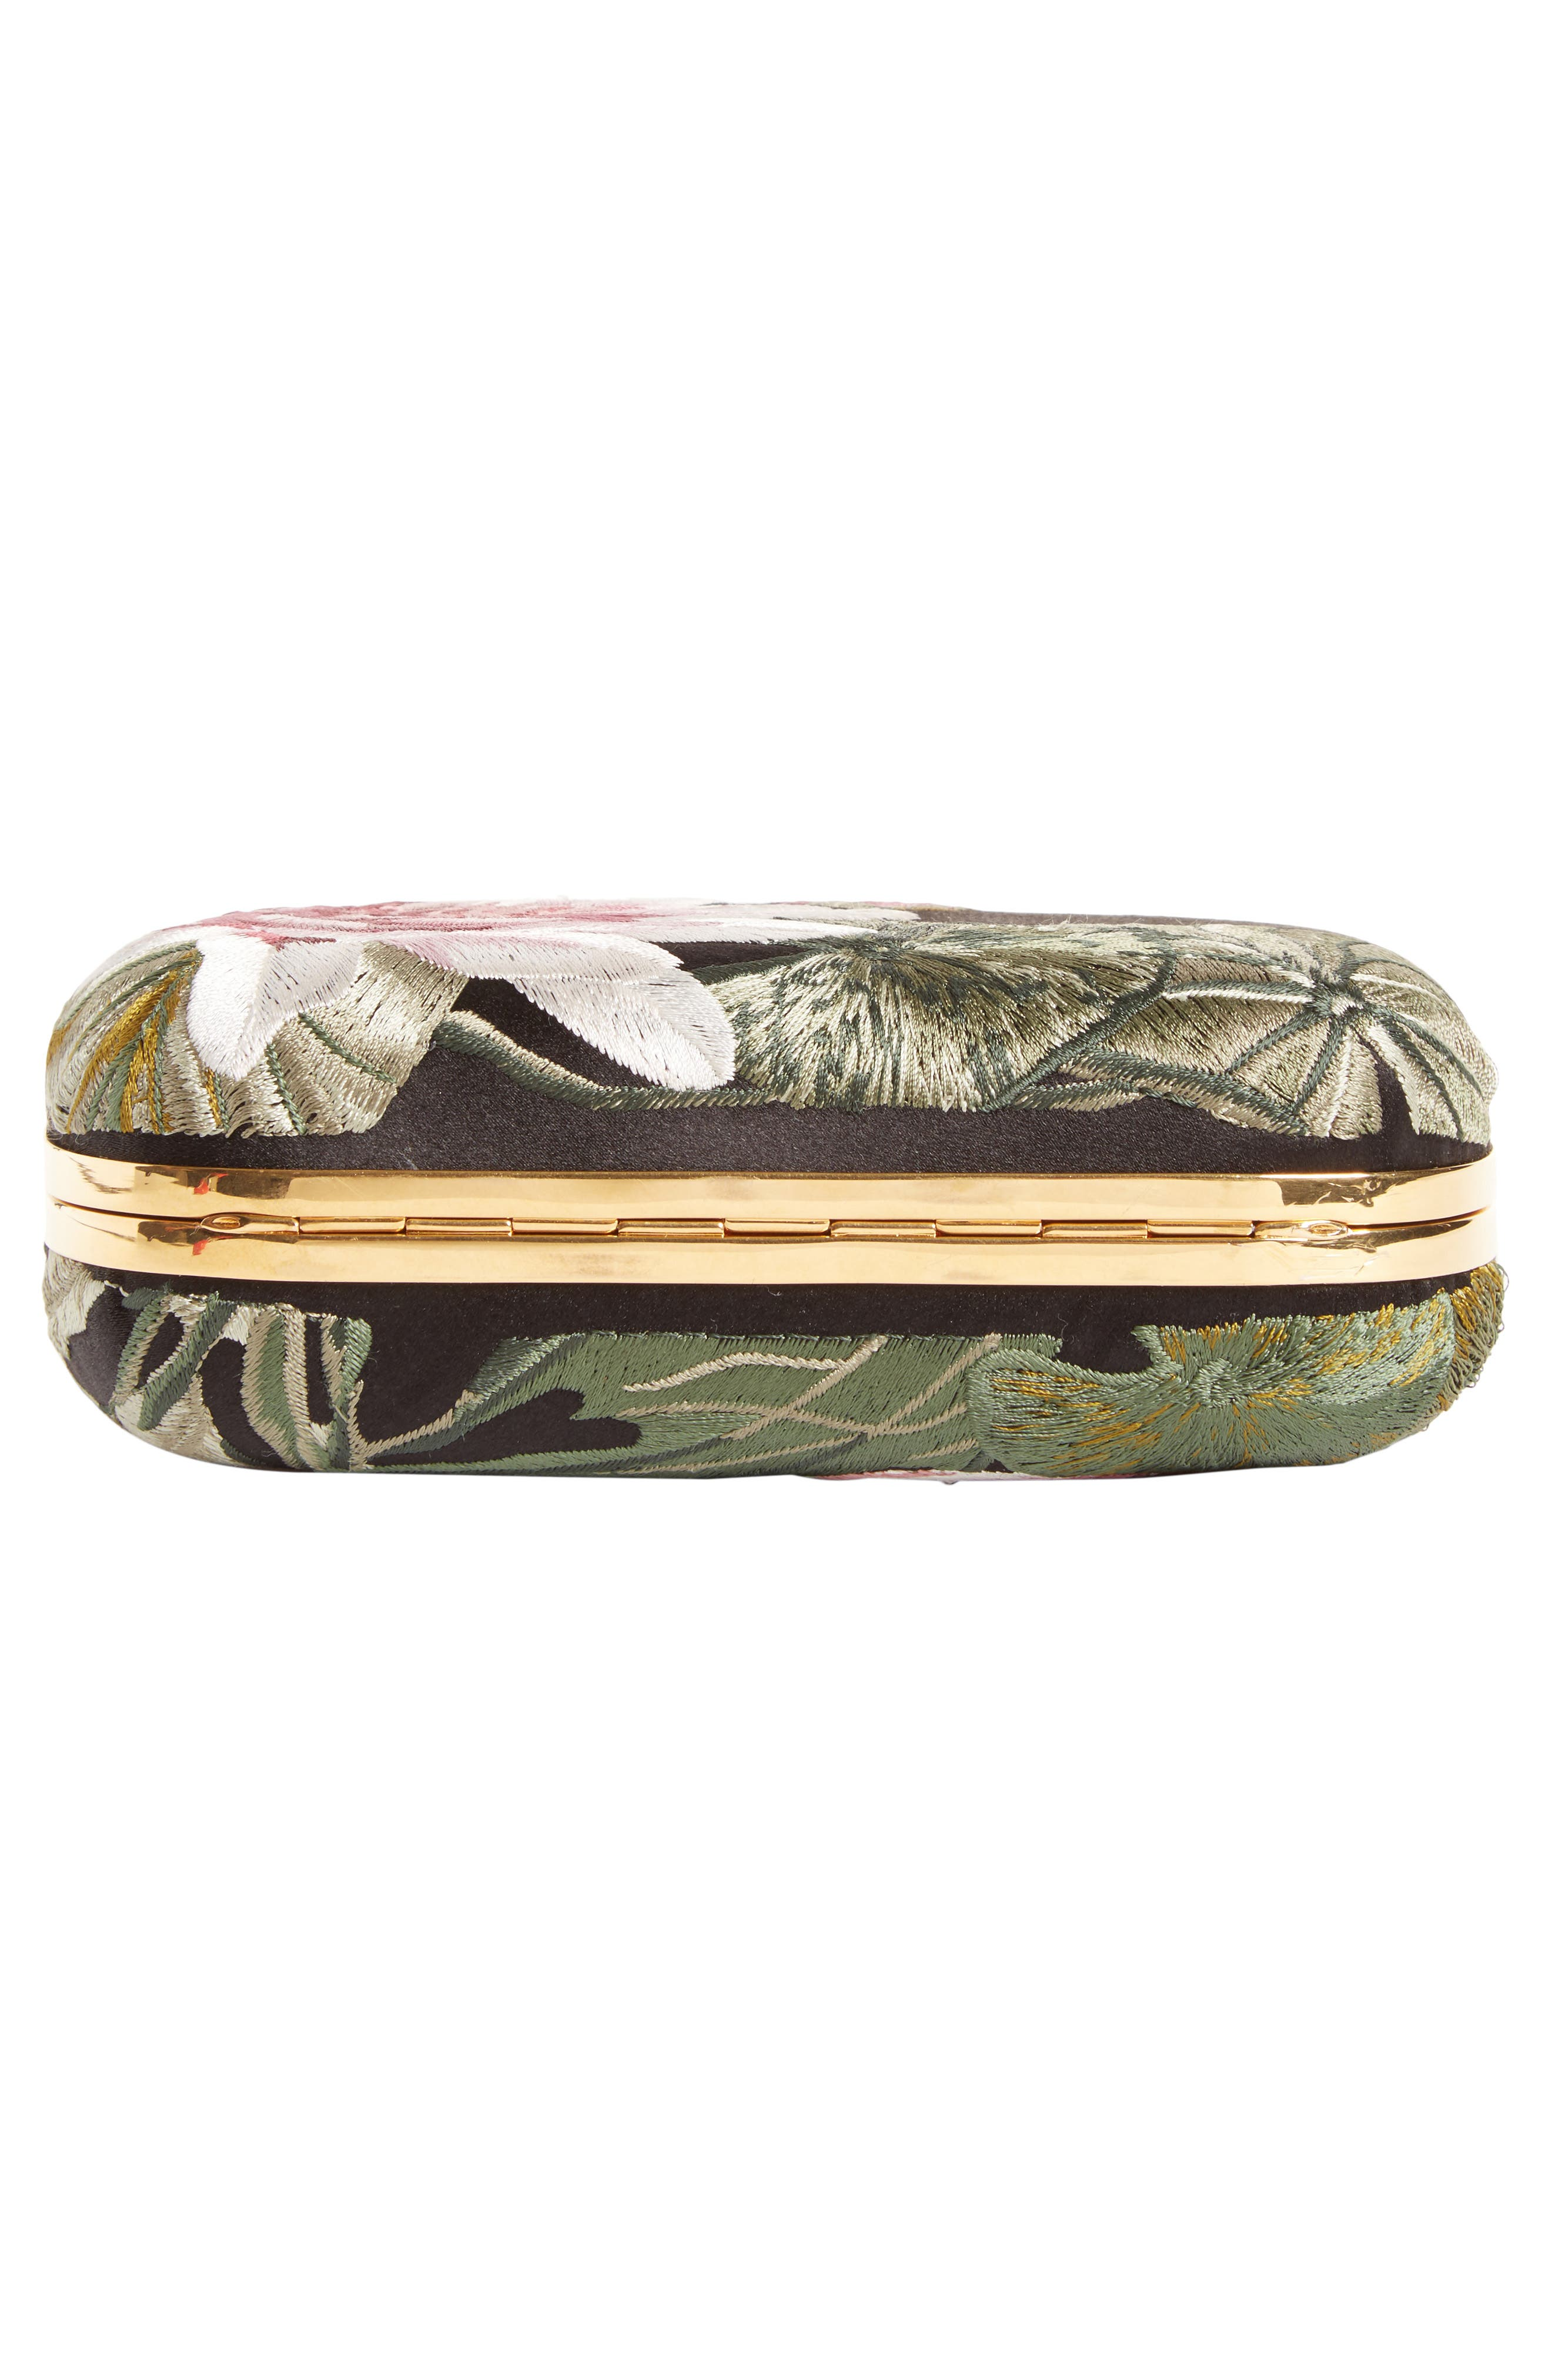 Queen & King Embroidered Satin Clutch,                             Alternate thumbnail 6, color,                             964